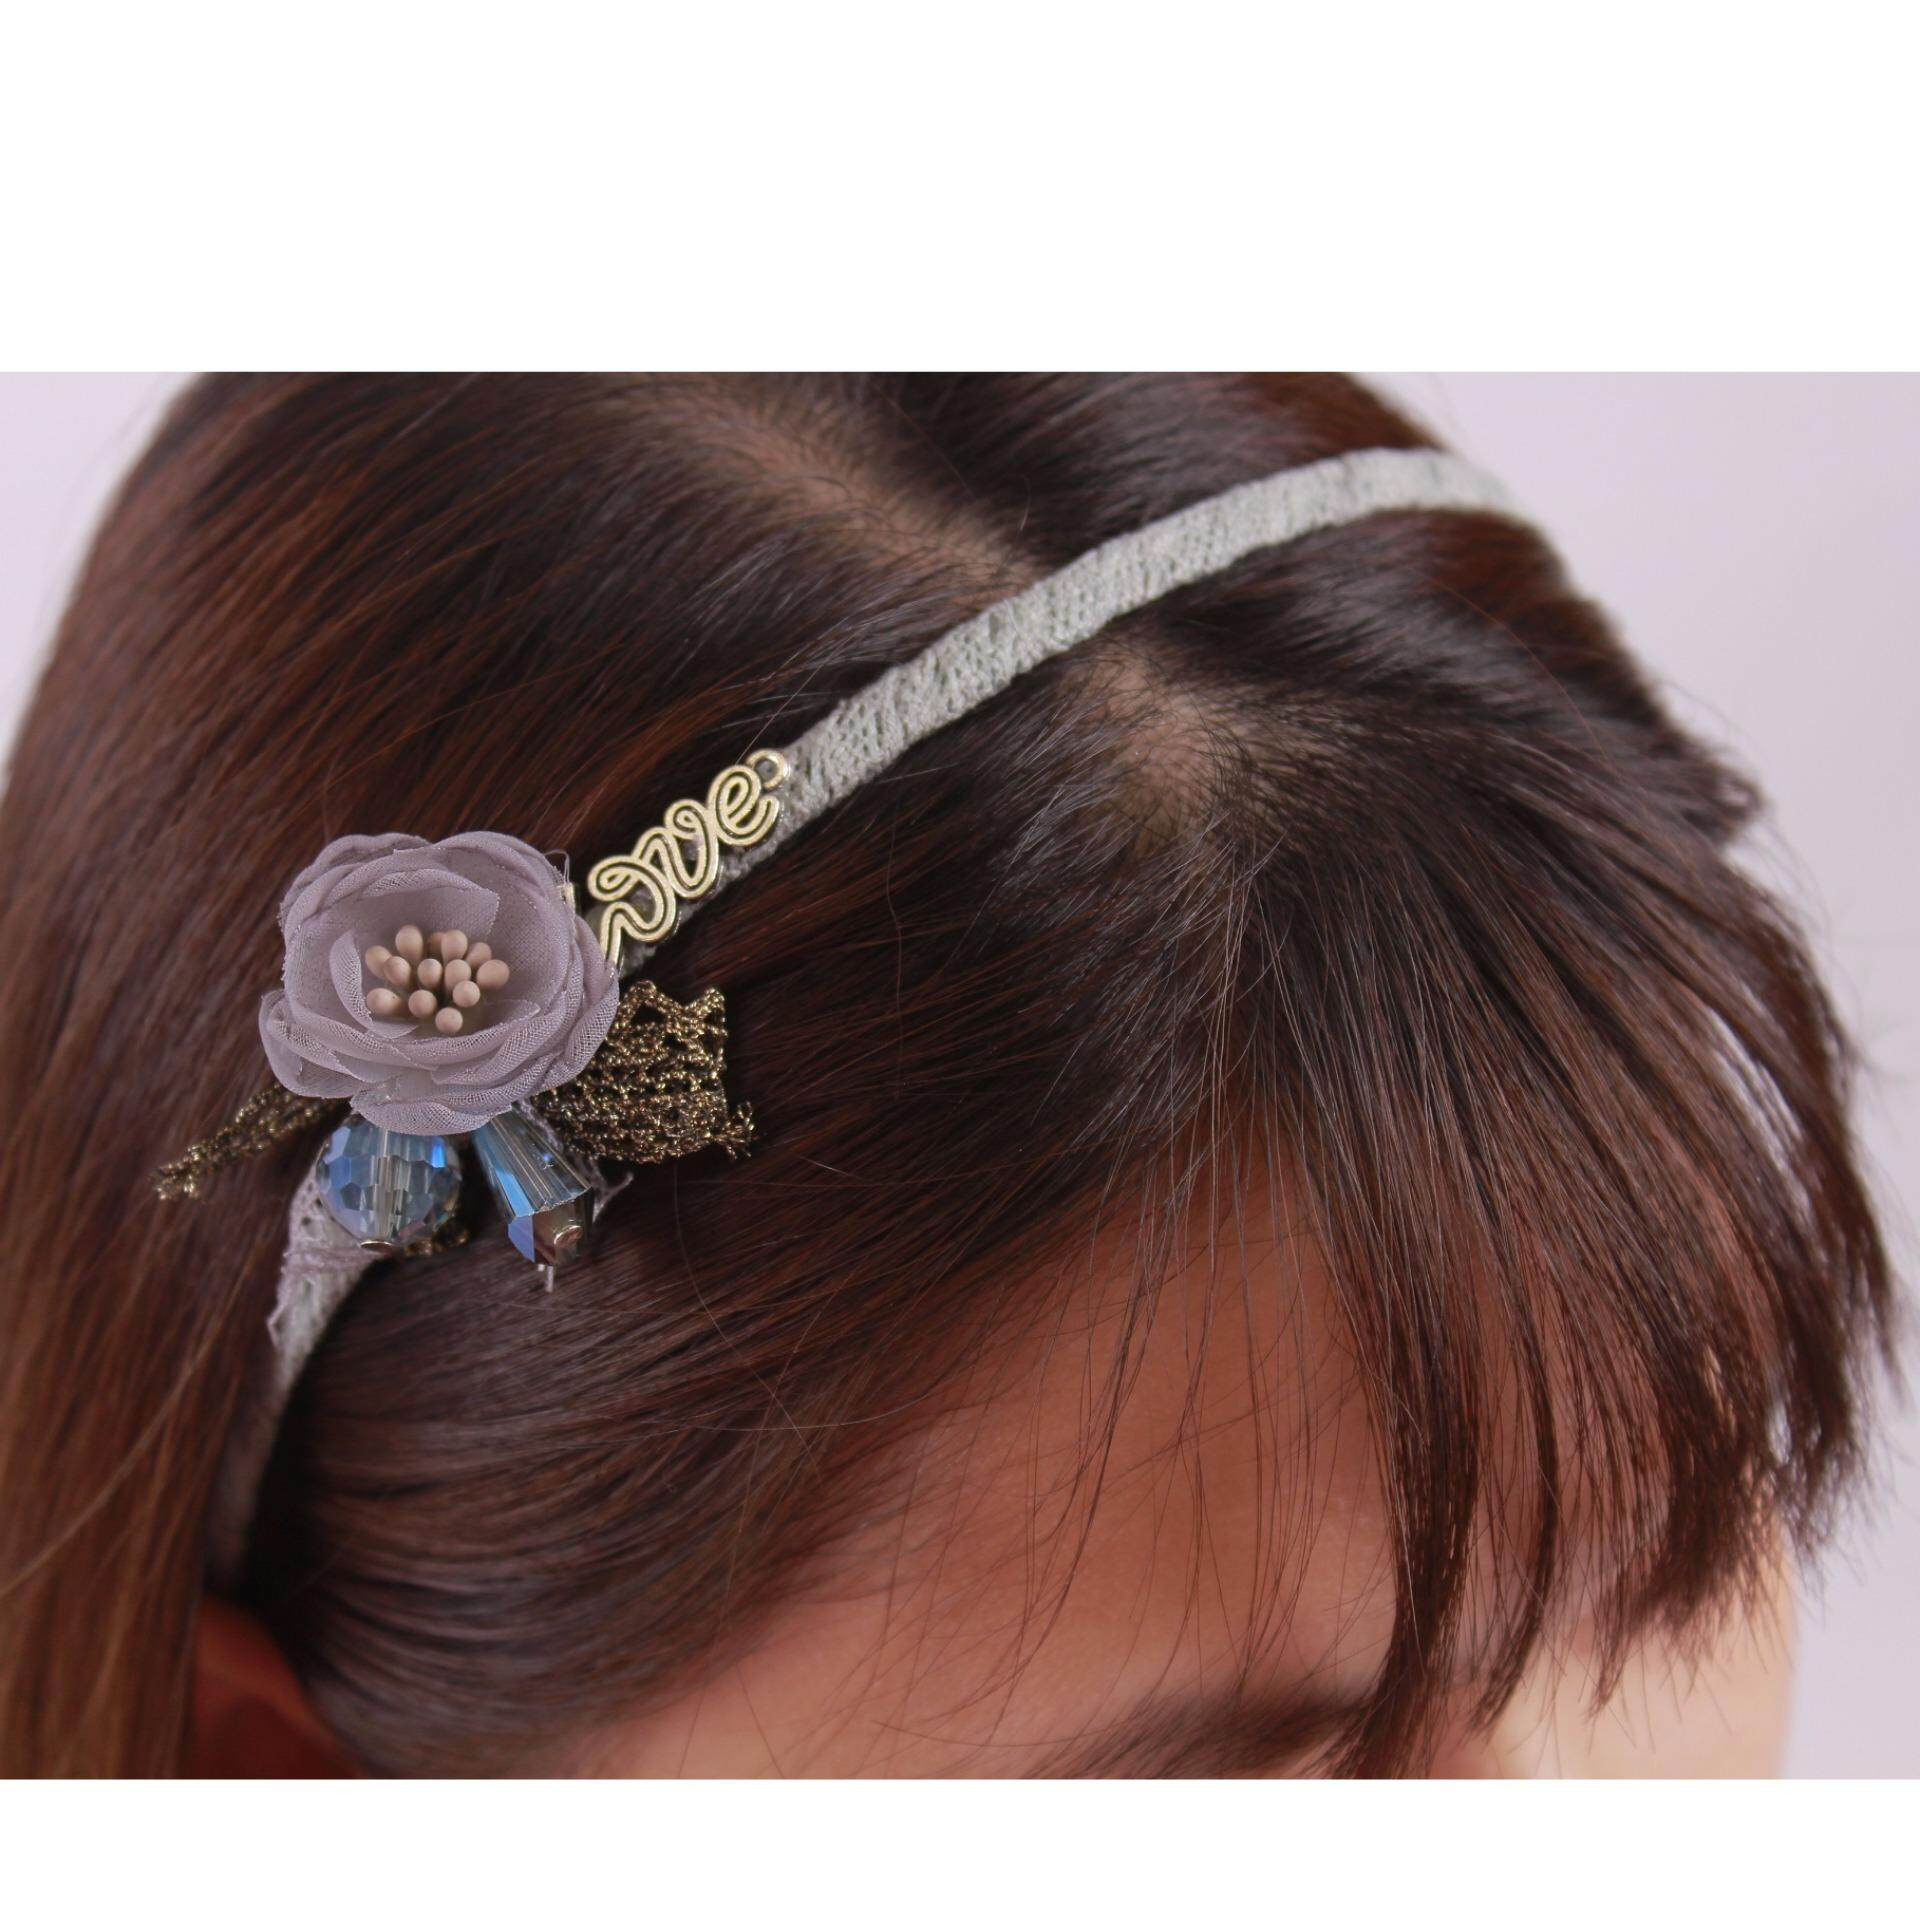 AFGY 70304 FGA 204 G Vintage Inspired Floral Hairband (Grey)